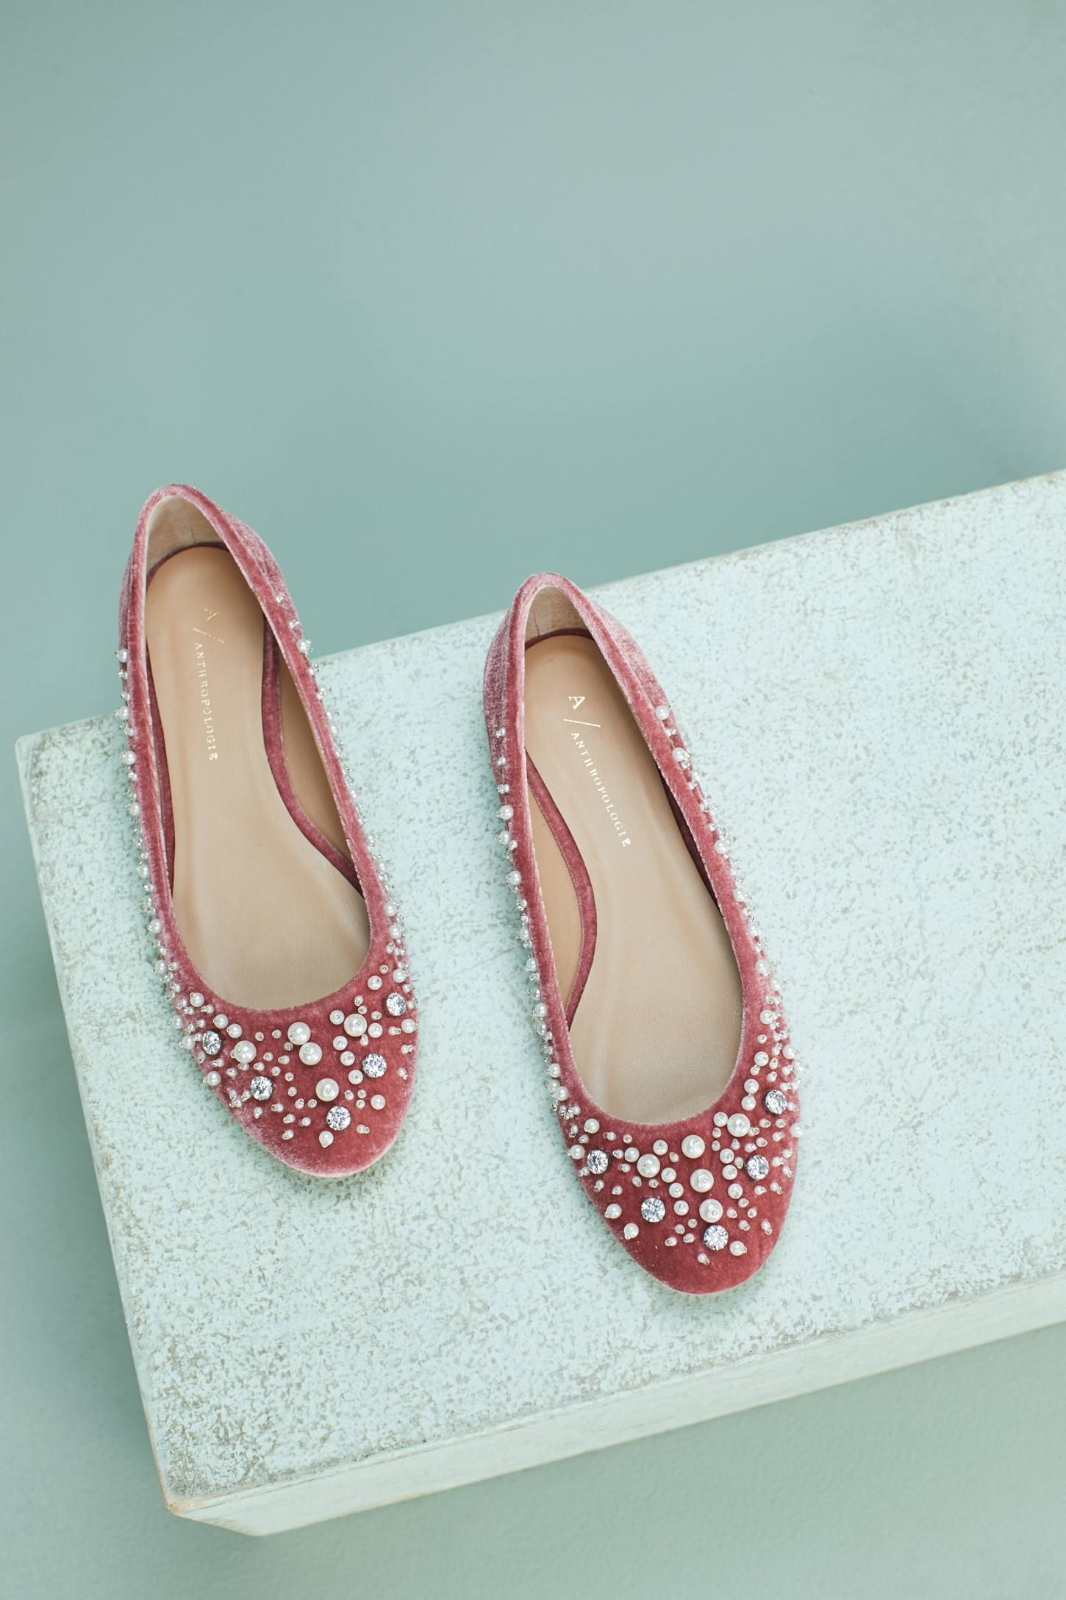 NEW Sz Anthropologie Opulent Embellished Pearl Ballet Flats Schuhes Sz NEW 10 or 40 NIB 136bf9